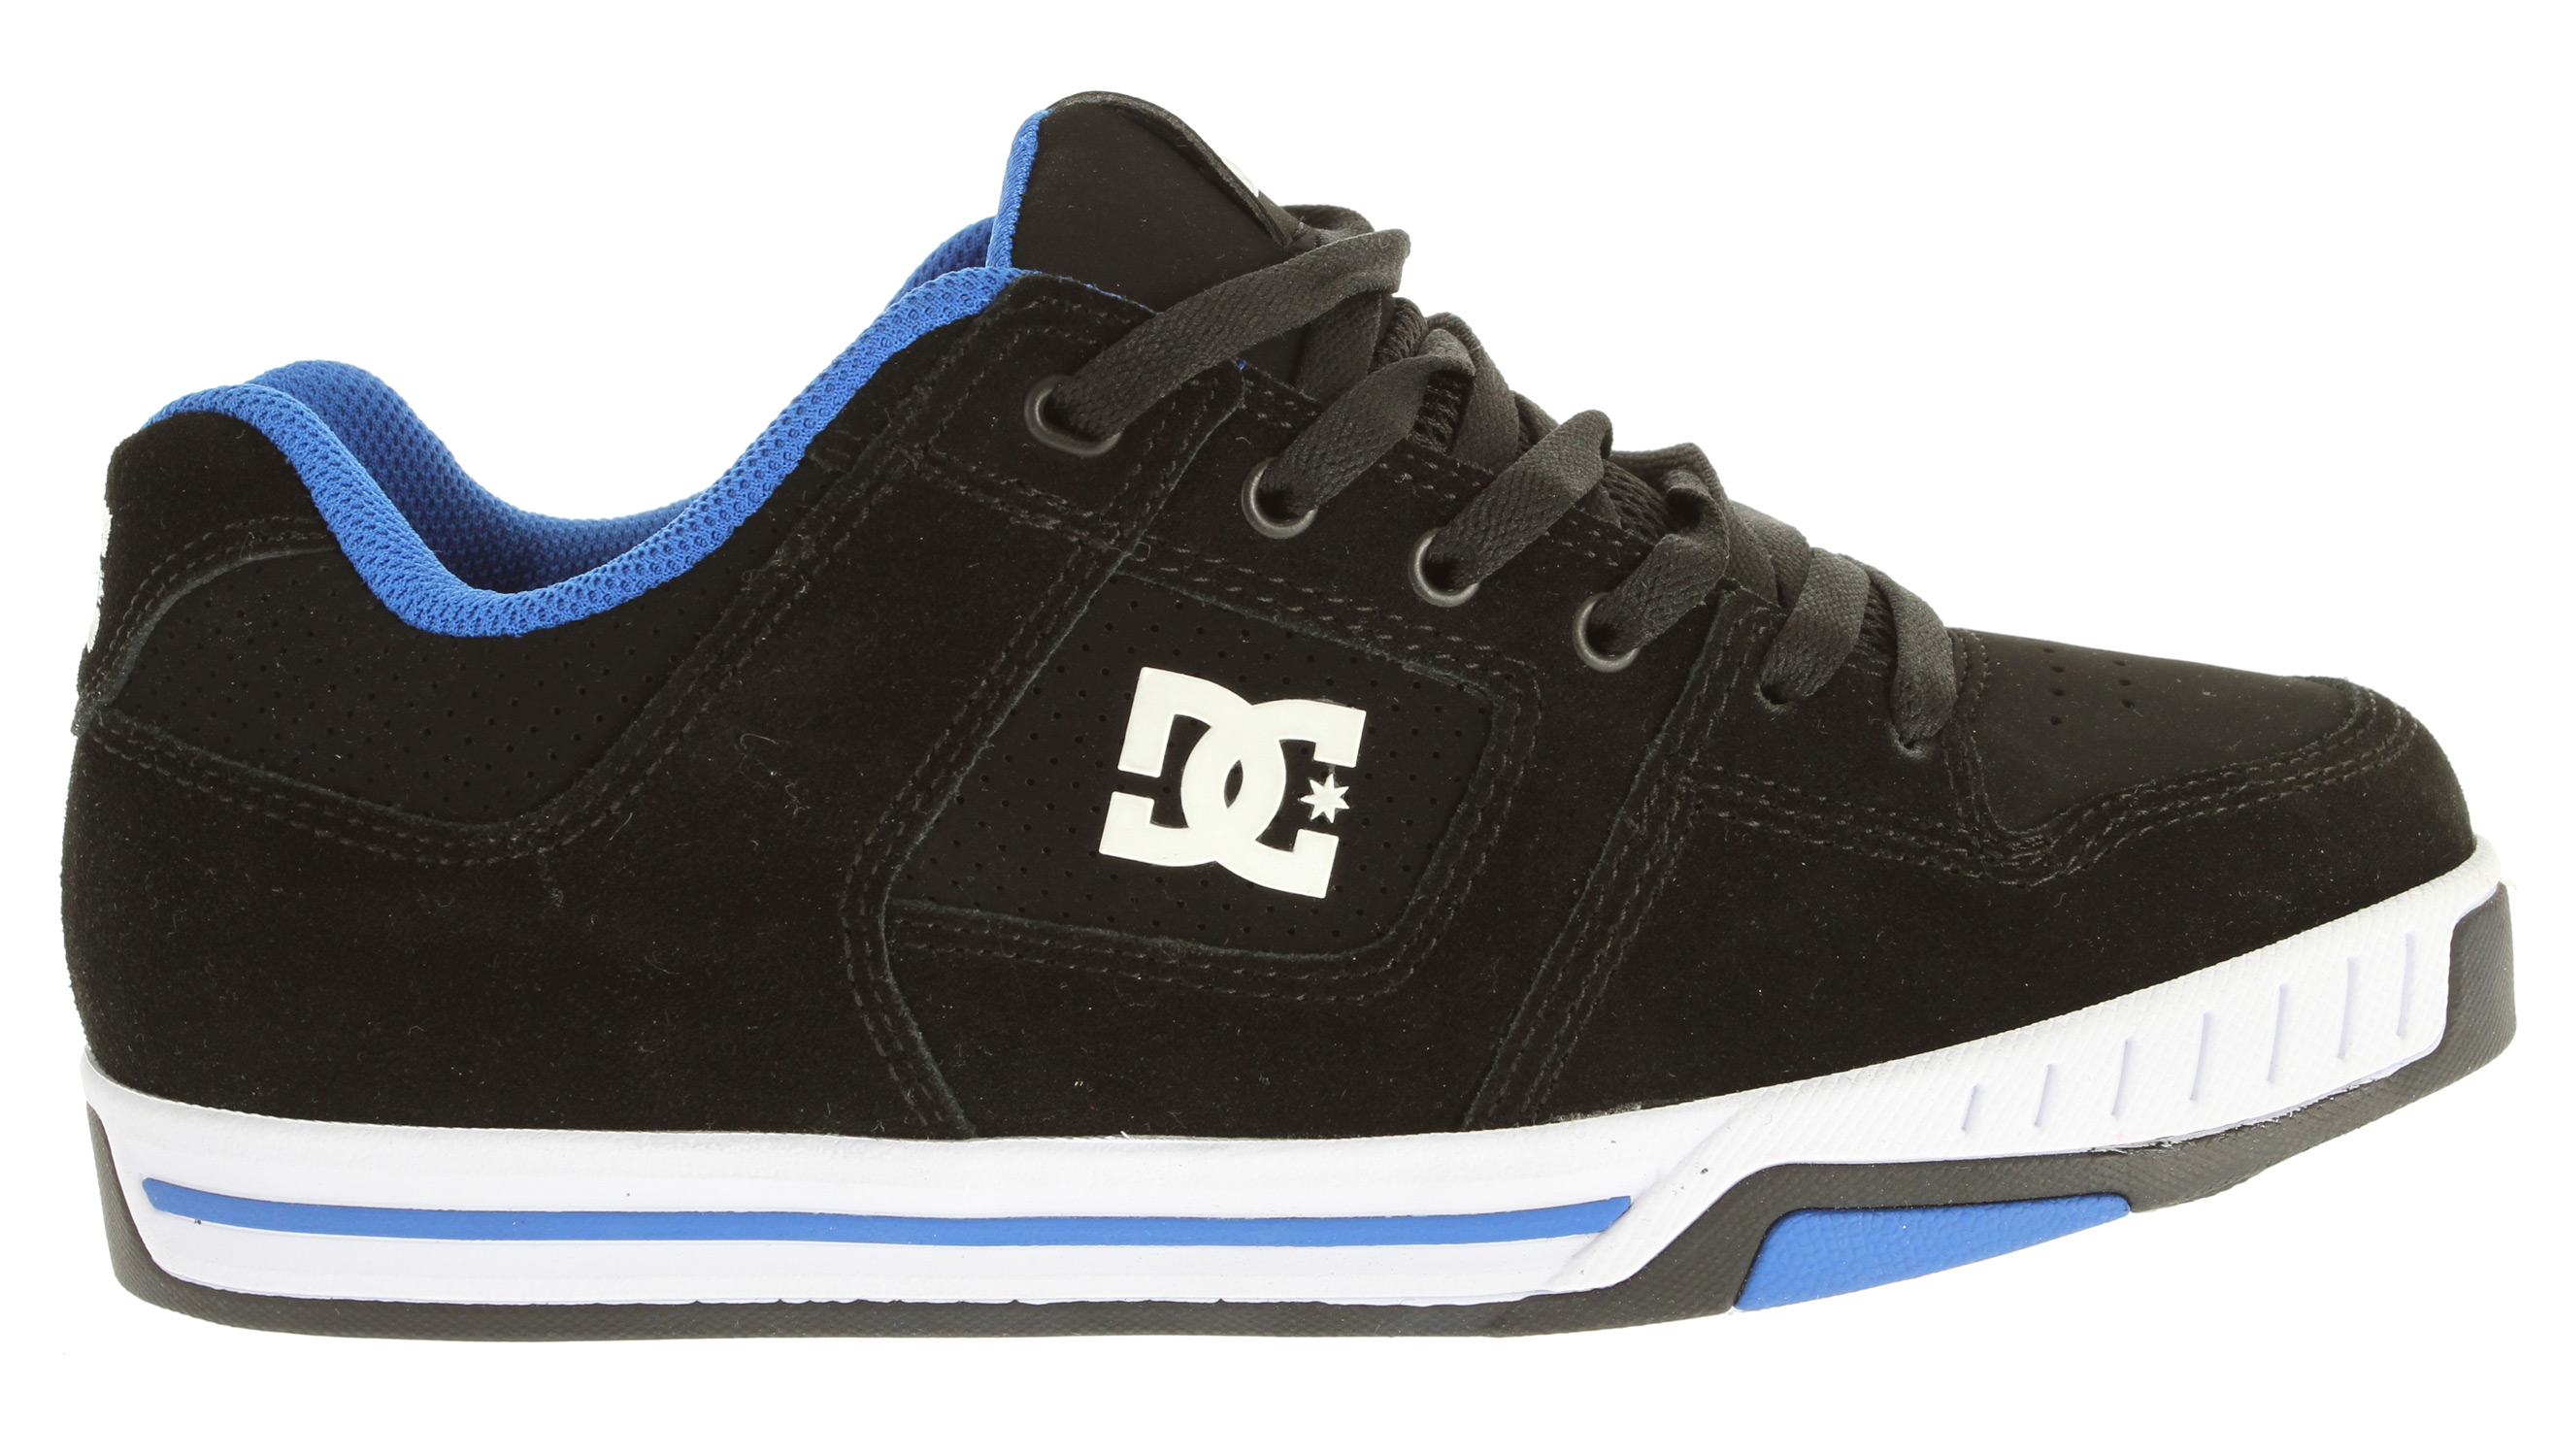 Skateboard DC Purist Skate Shoes - $37.95